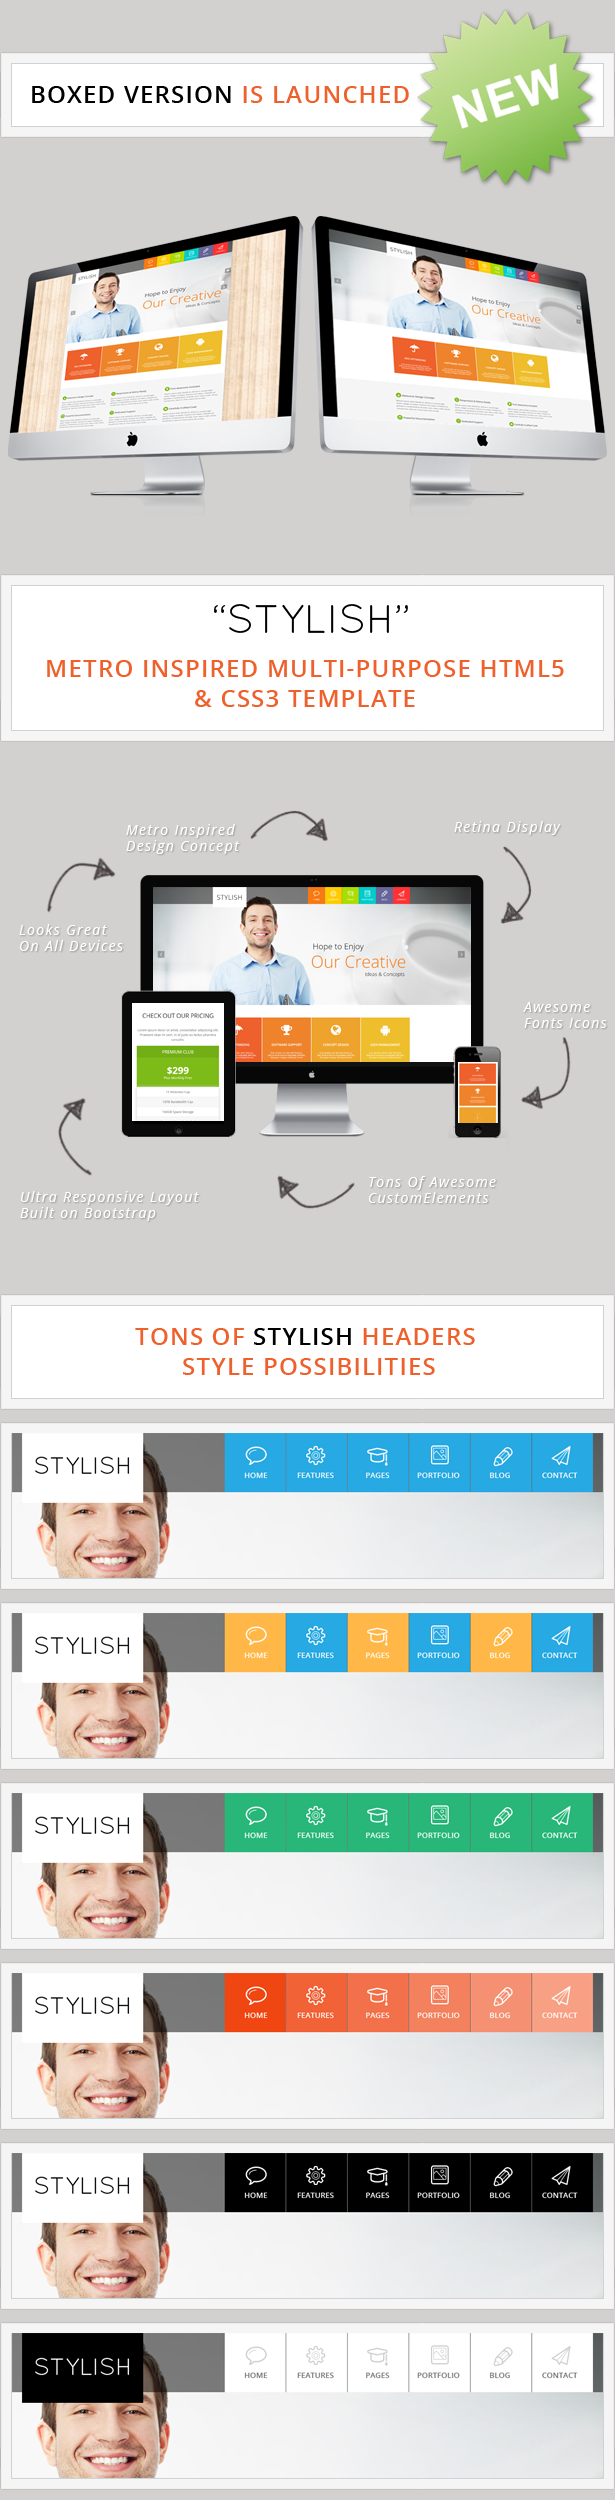 STYLISH WordPress Version Is Now Available !!!        	                  STYLISH – Is a clean and responsive design that comes with rich tools and options to make creating website incredibly simple.  With a tons...